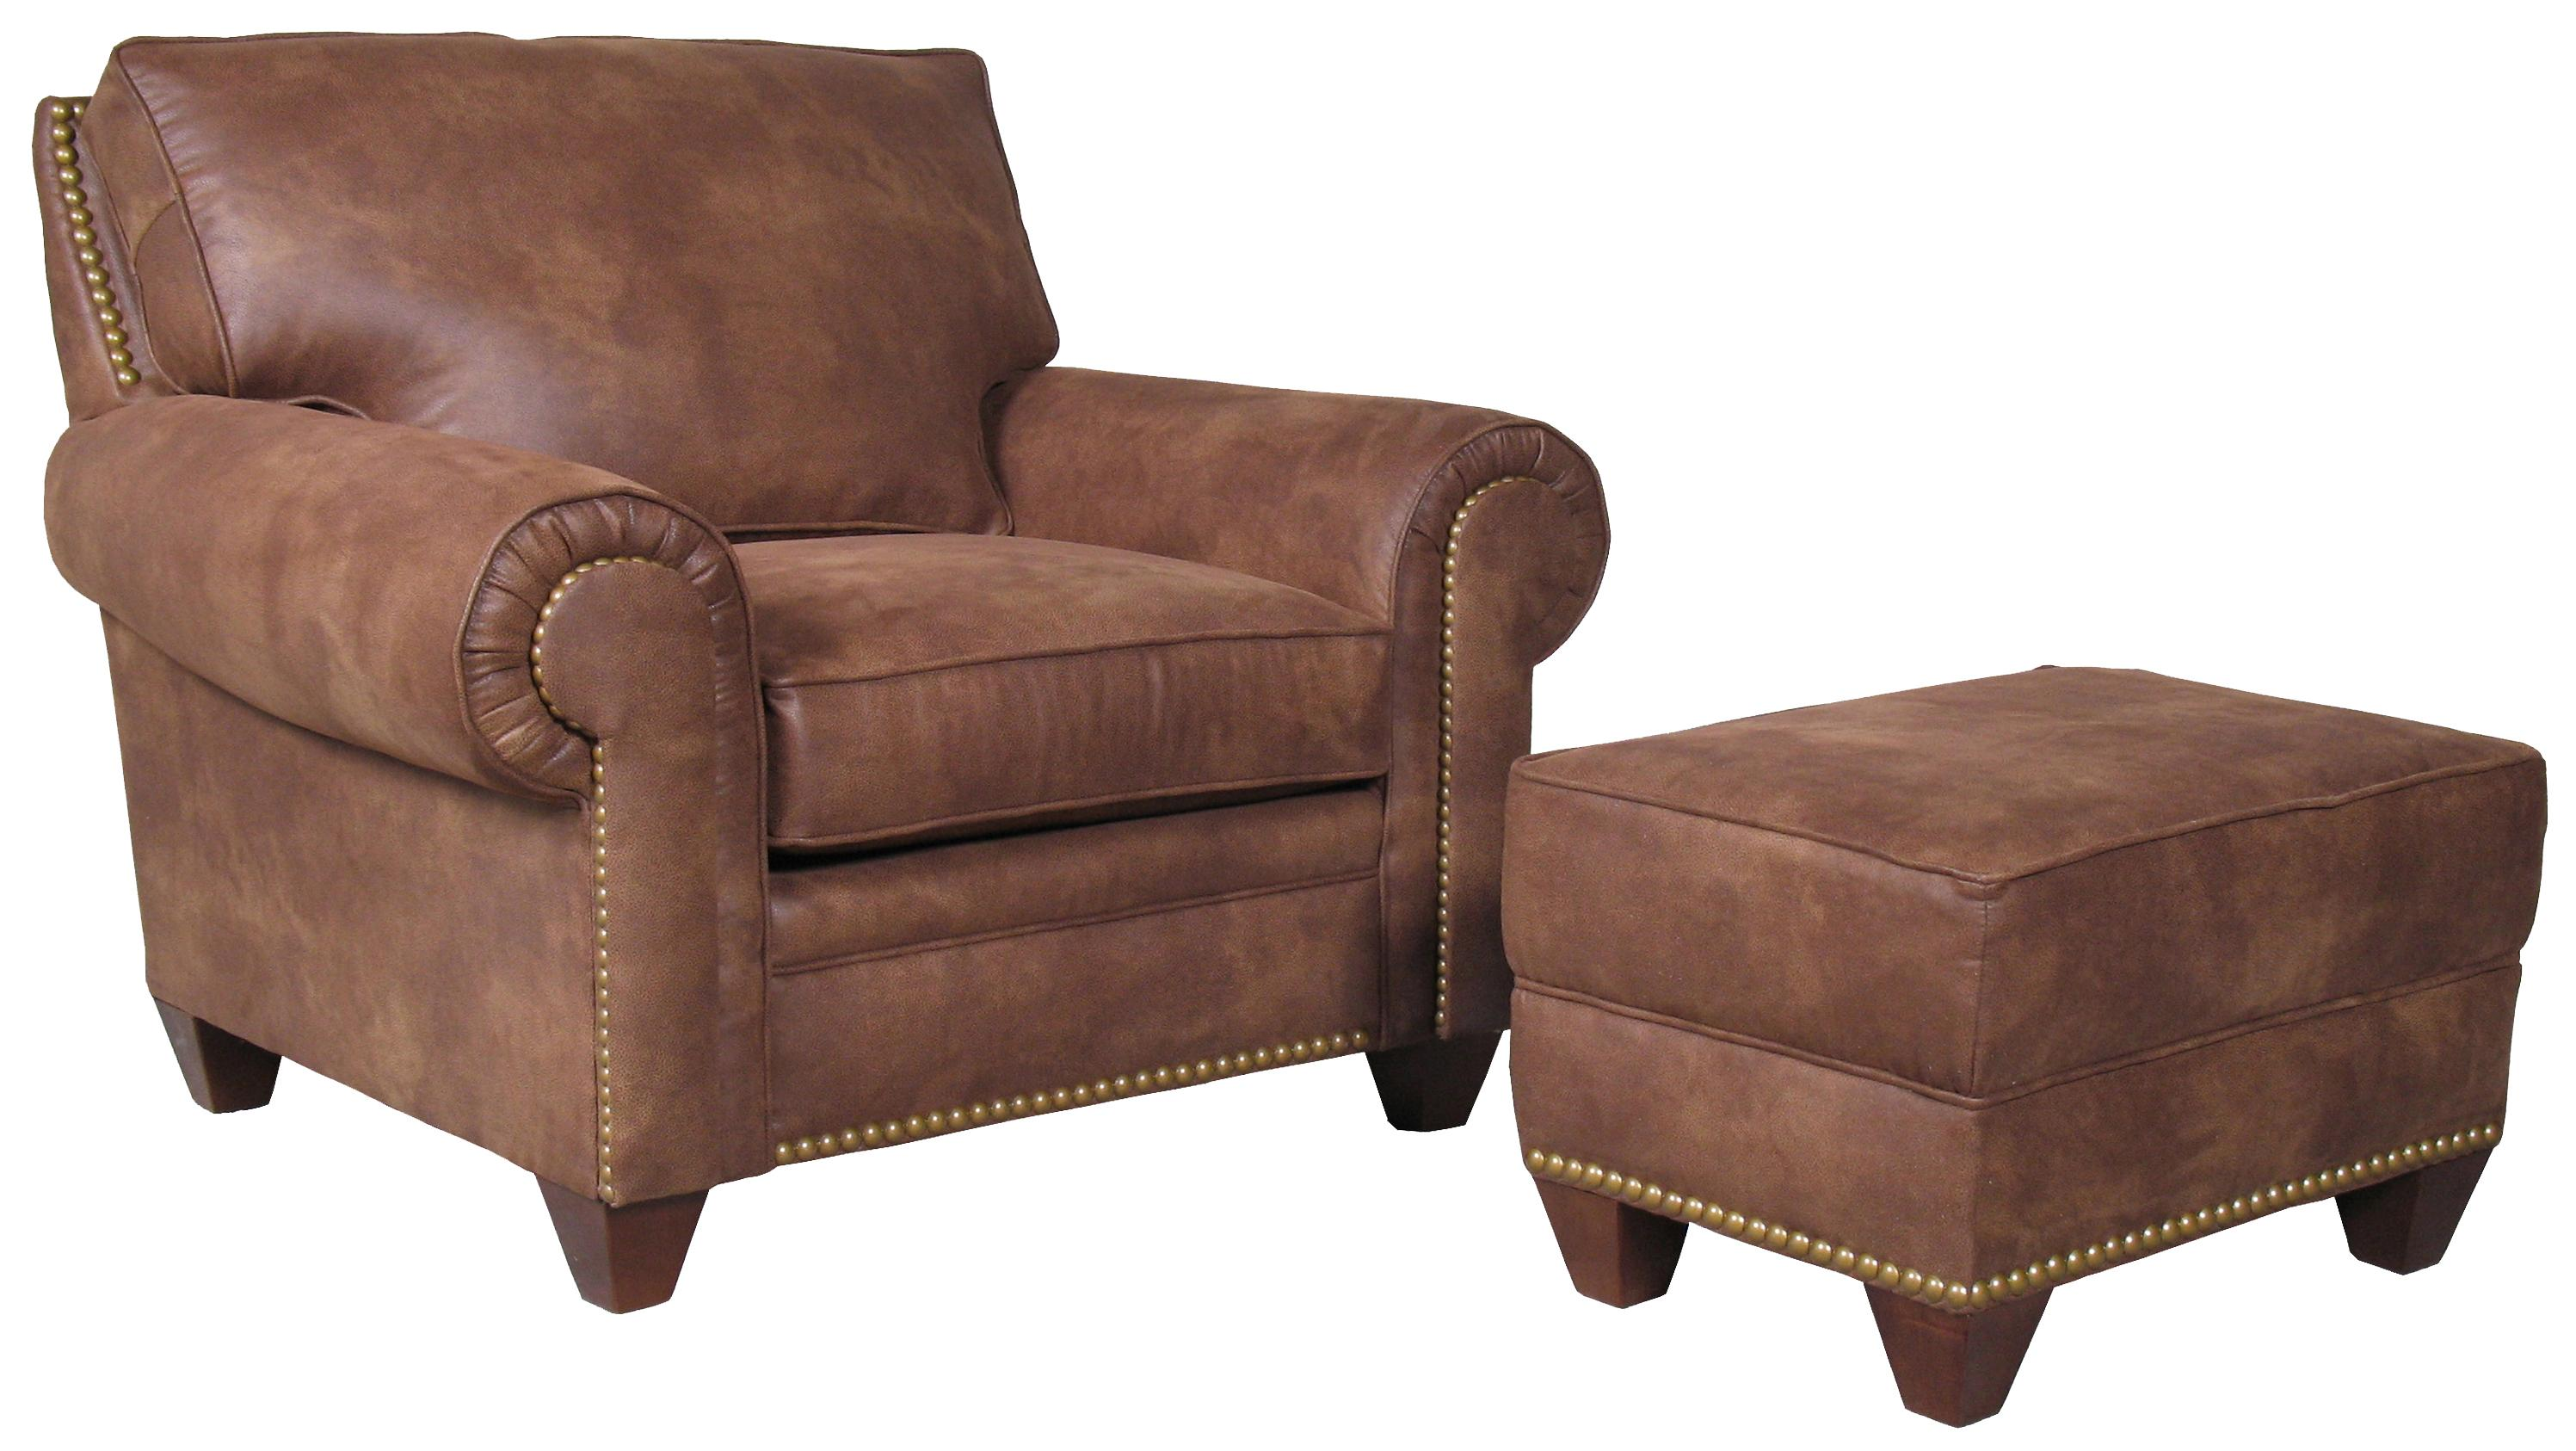 Mayo 2840 Chair and Ottoman - Item Number: 2840-040+050